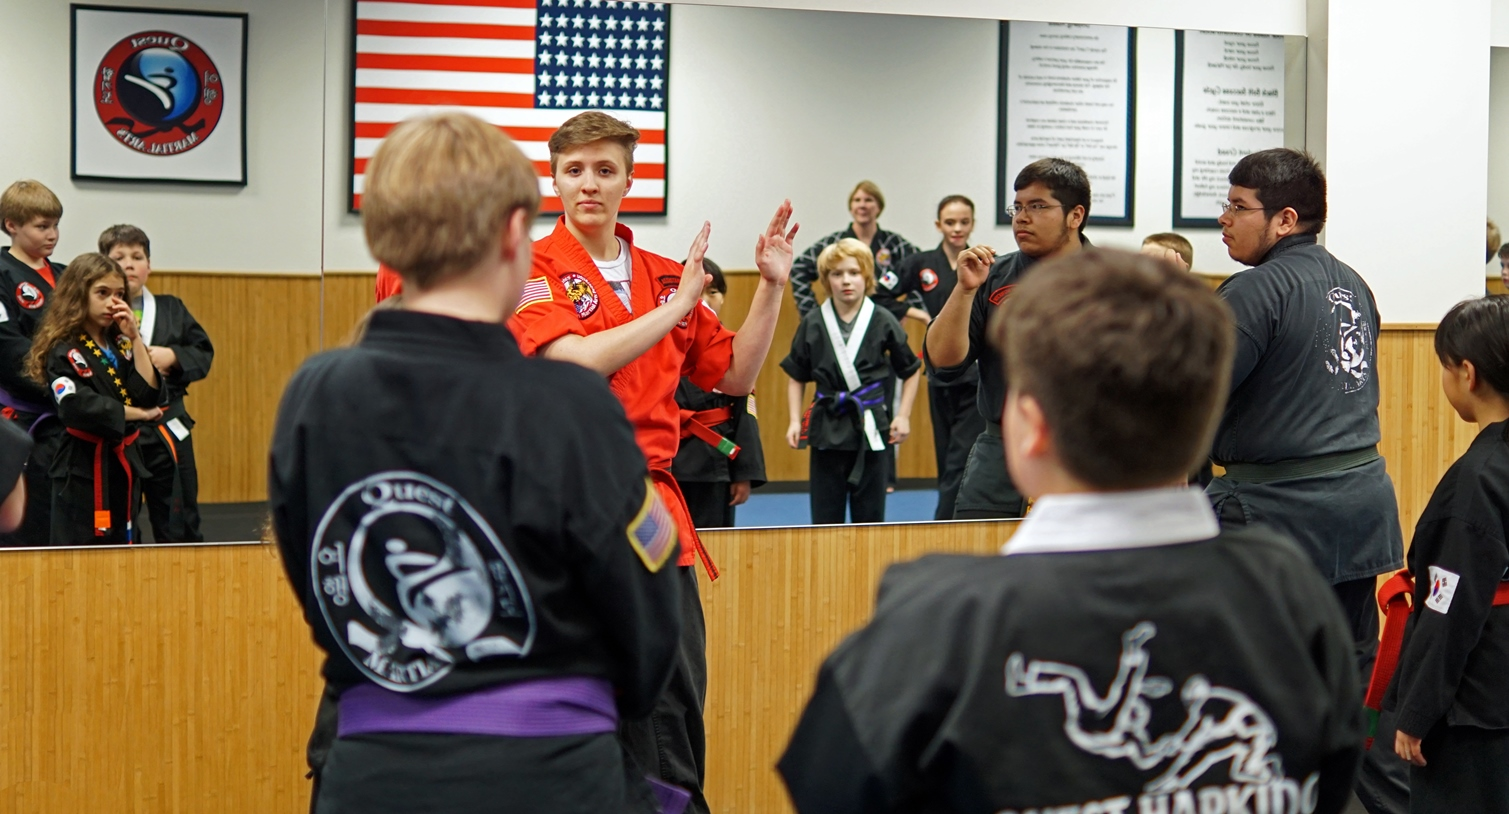 Quest Martial Arts Kids' Programs and Bully Prevention